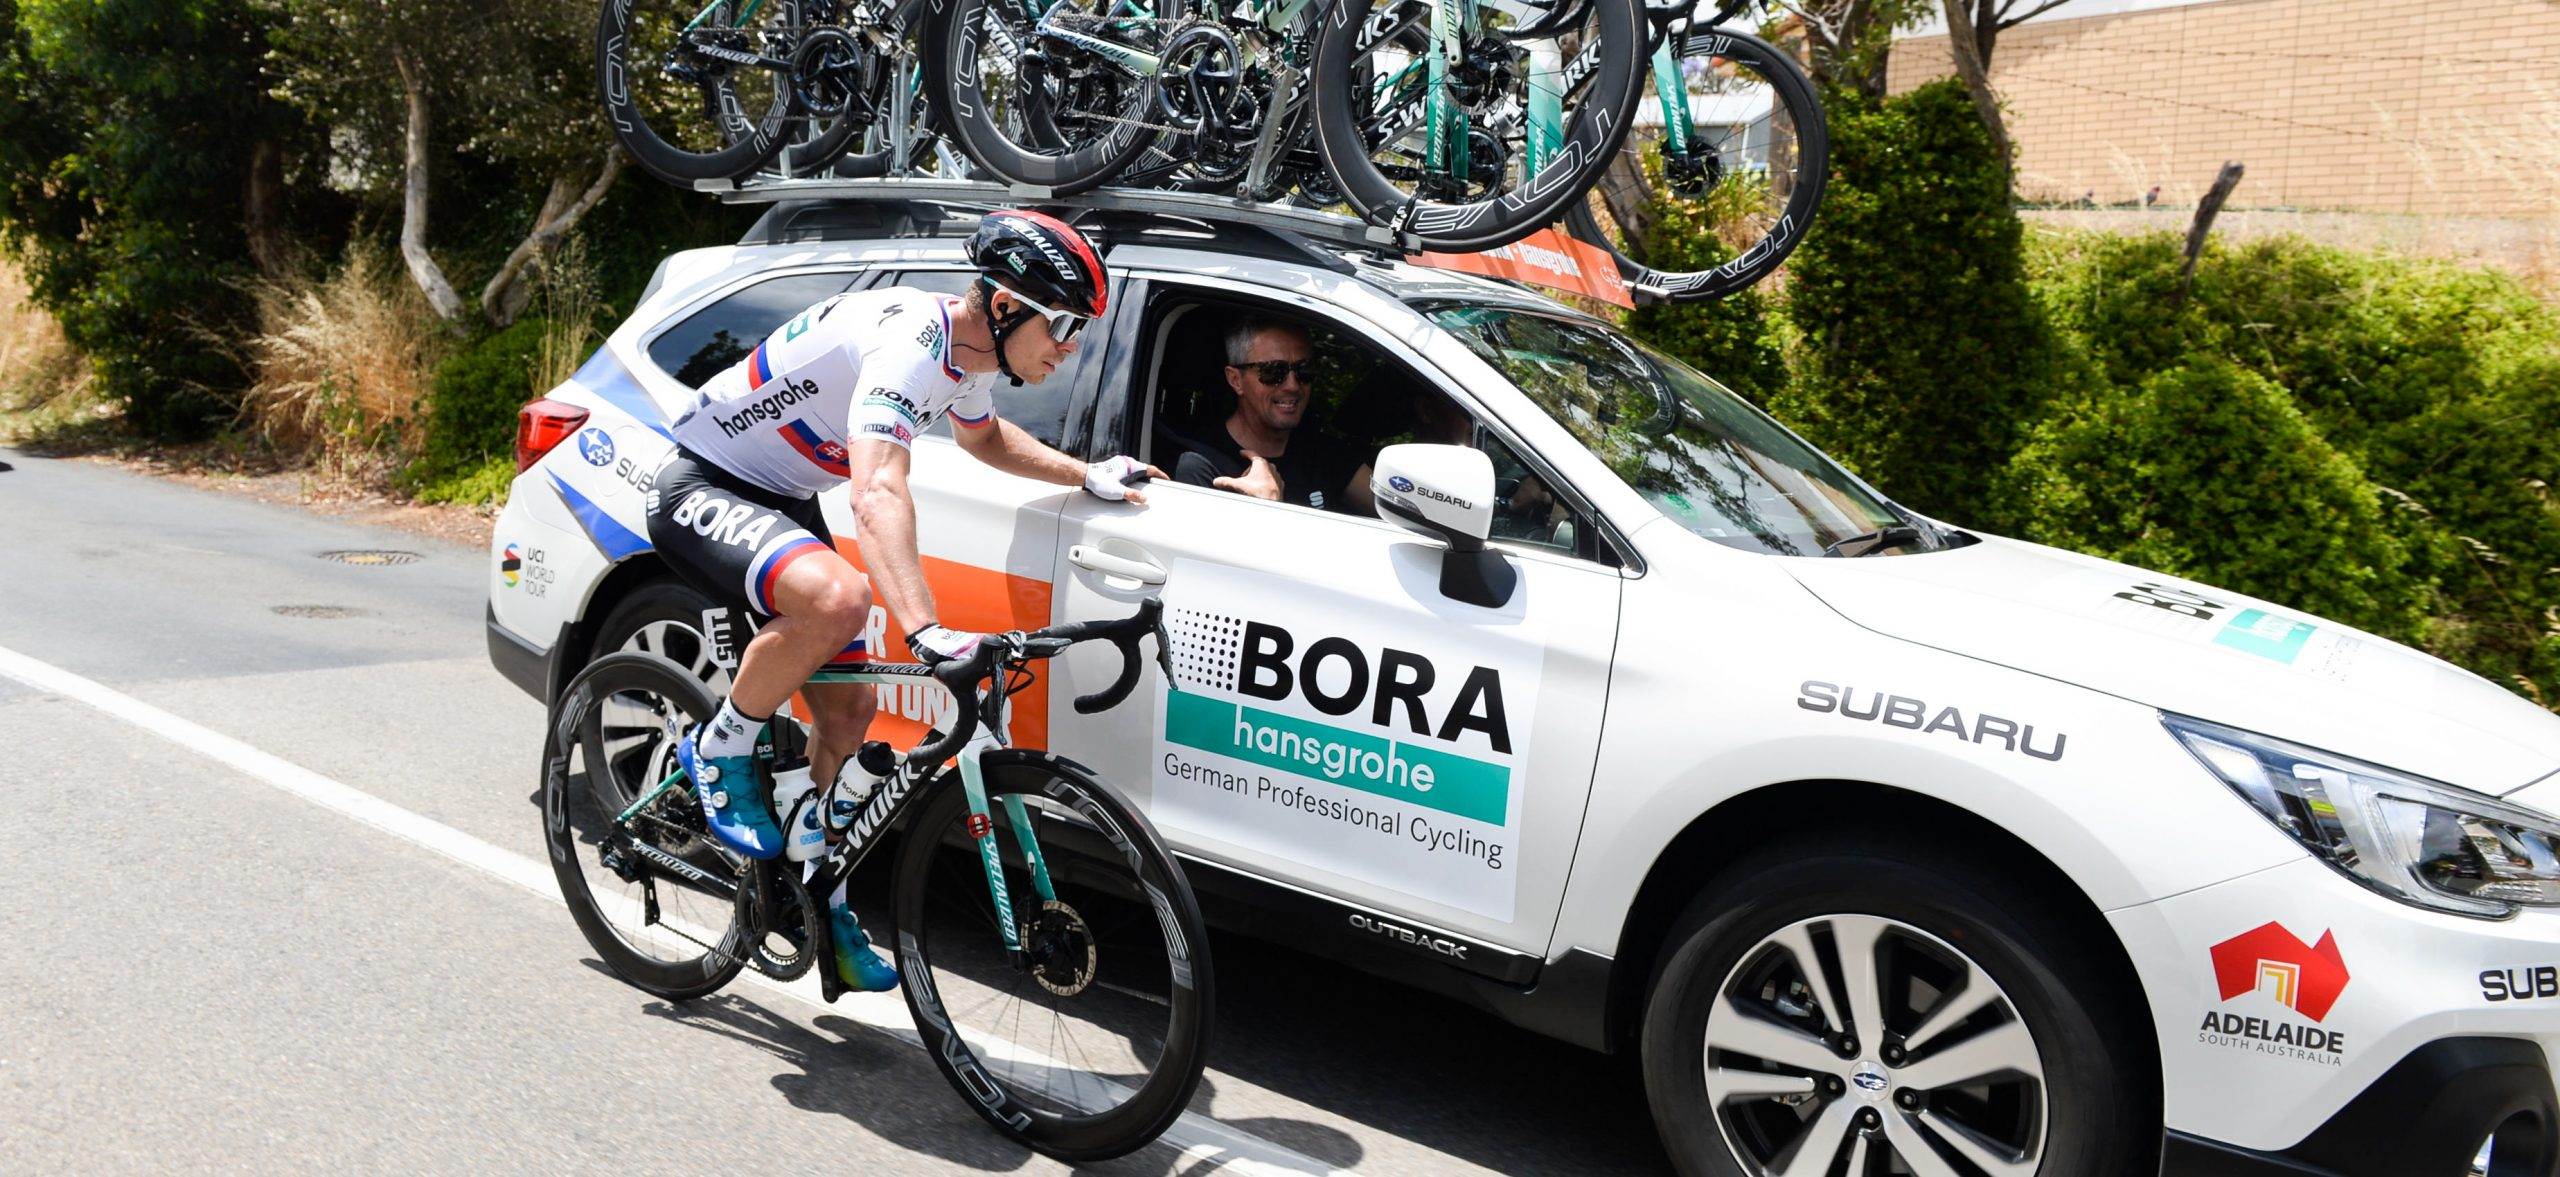 Bora-Hansgrohe's Peter Sagan talking with his team during the Tour Down Under